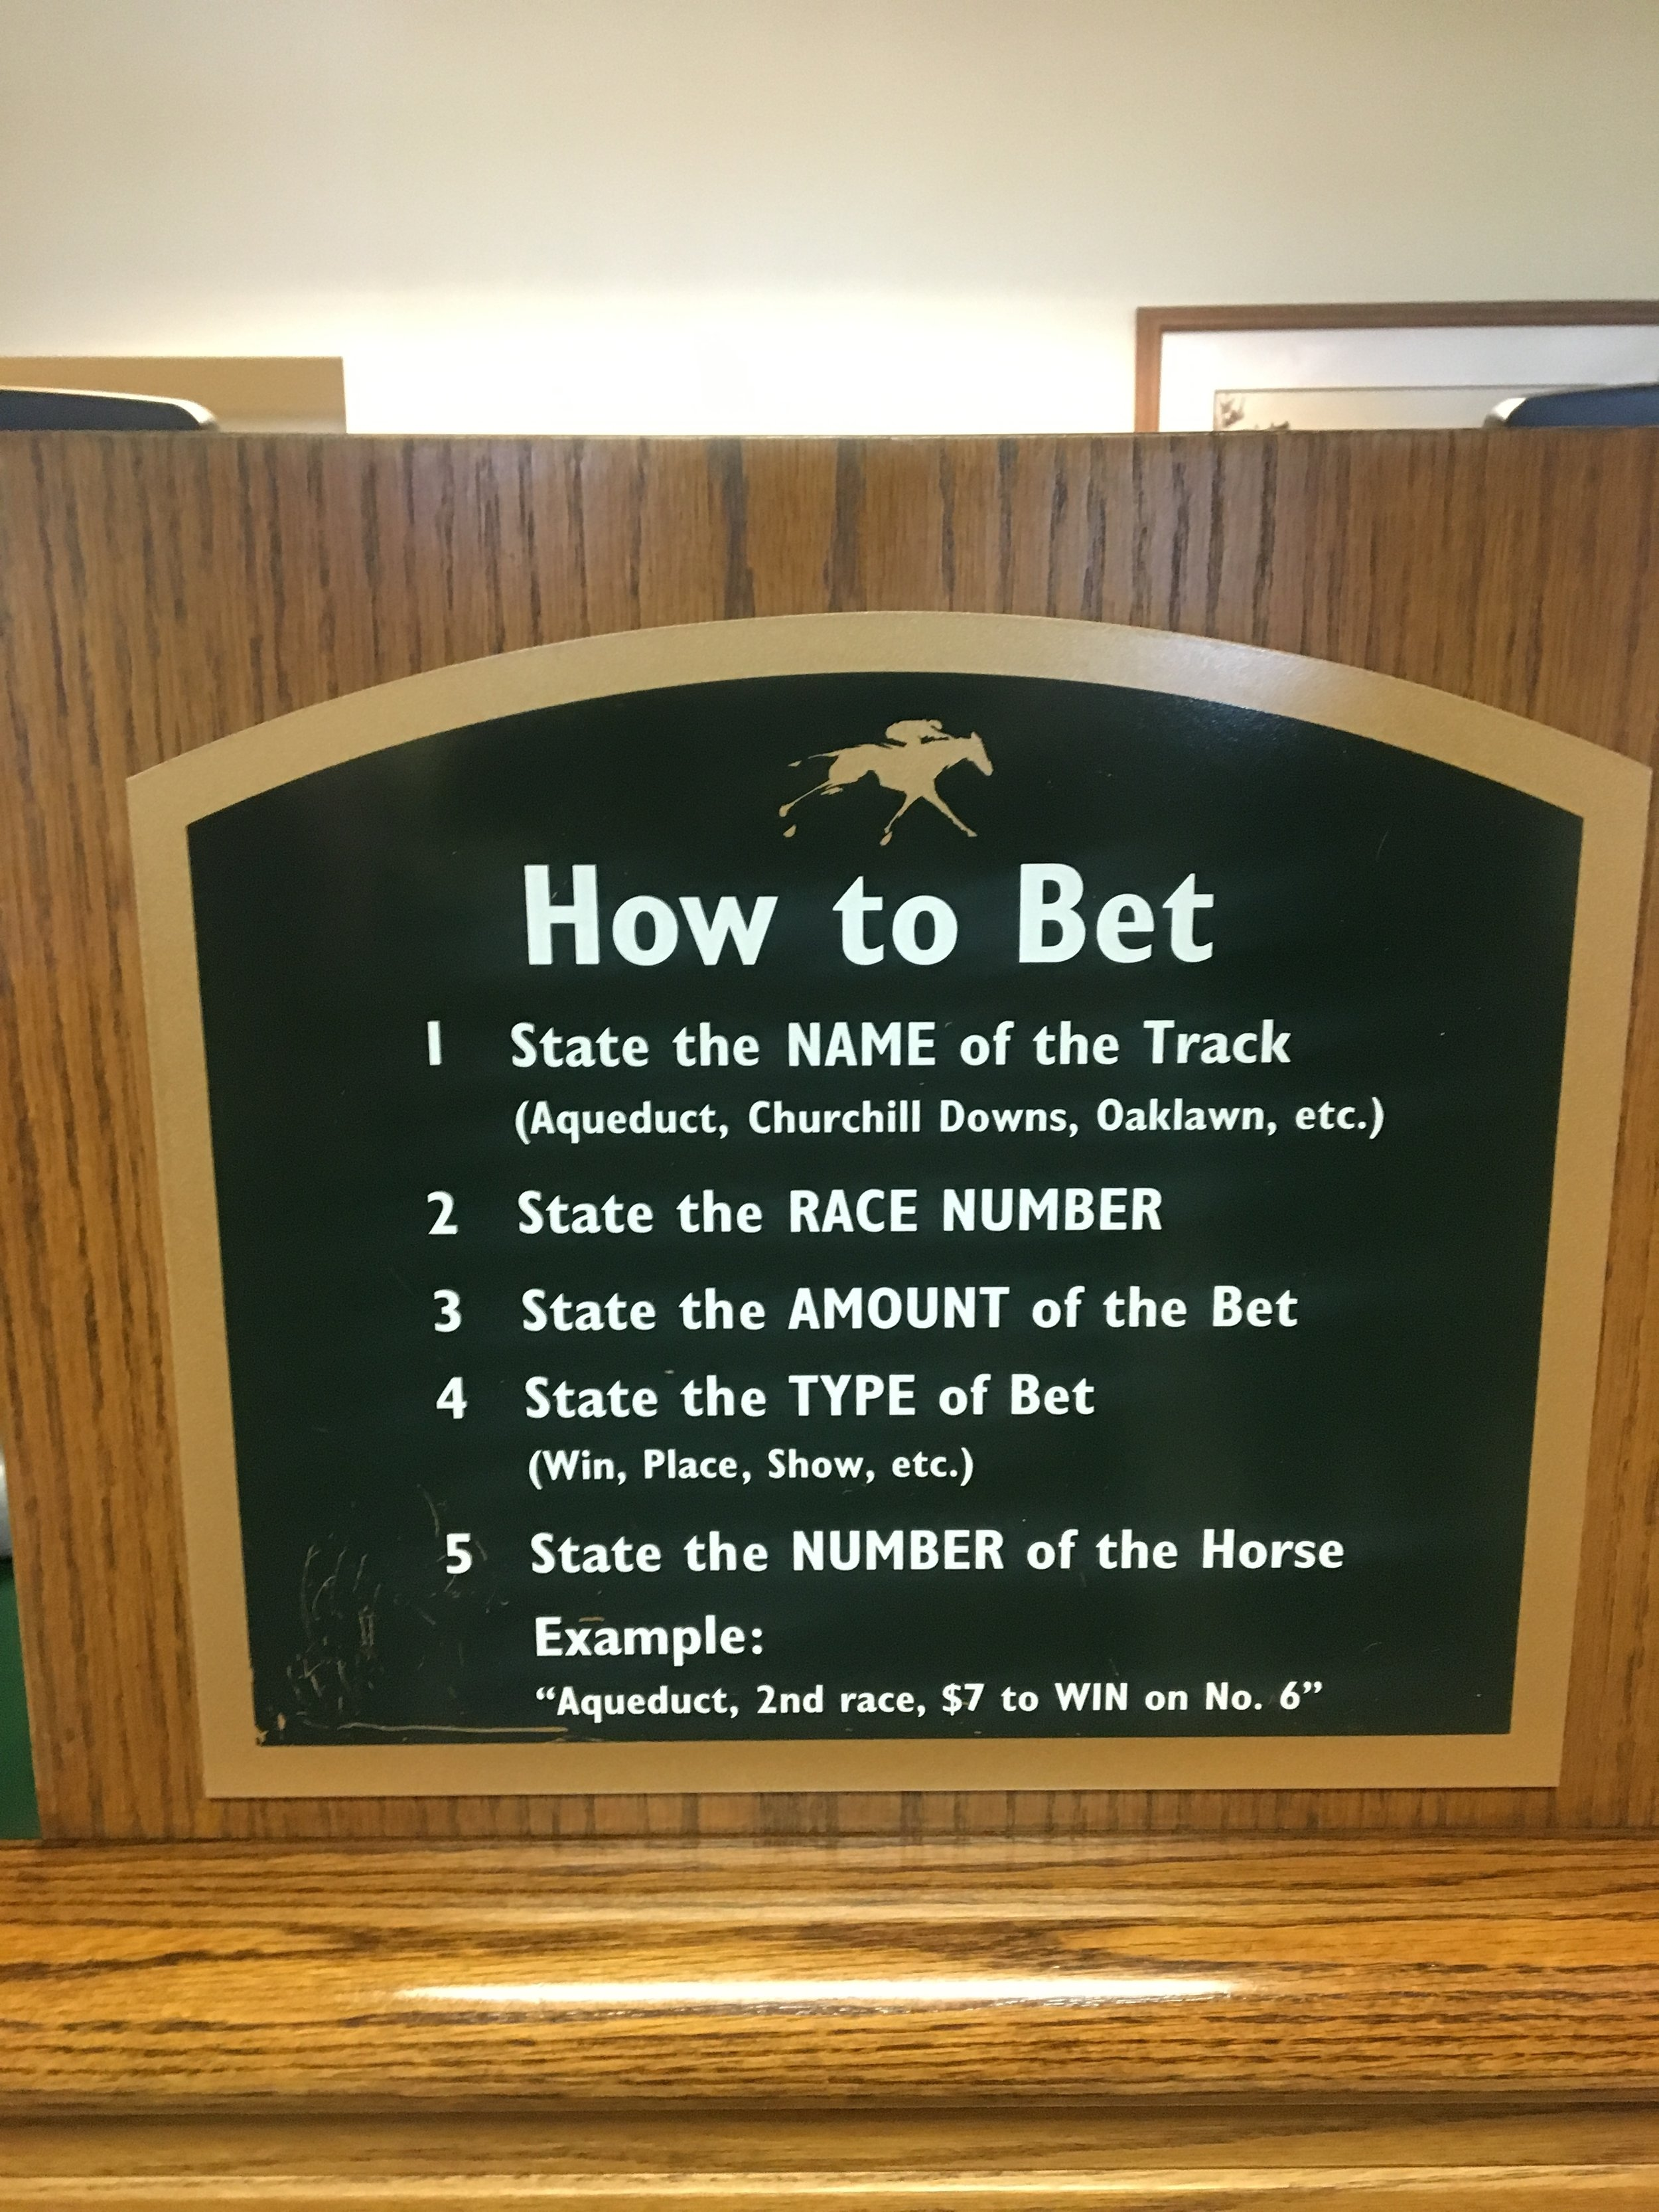 Horse betting!!! There is a whole lot of thought that can go into this like stats, breed etc... If your drunk with $2 like me you just pick which horse has the funniest name.